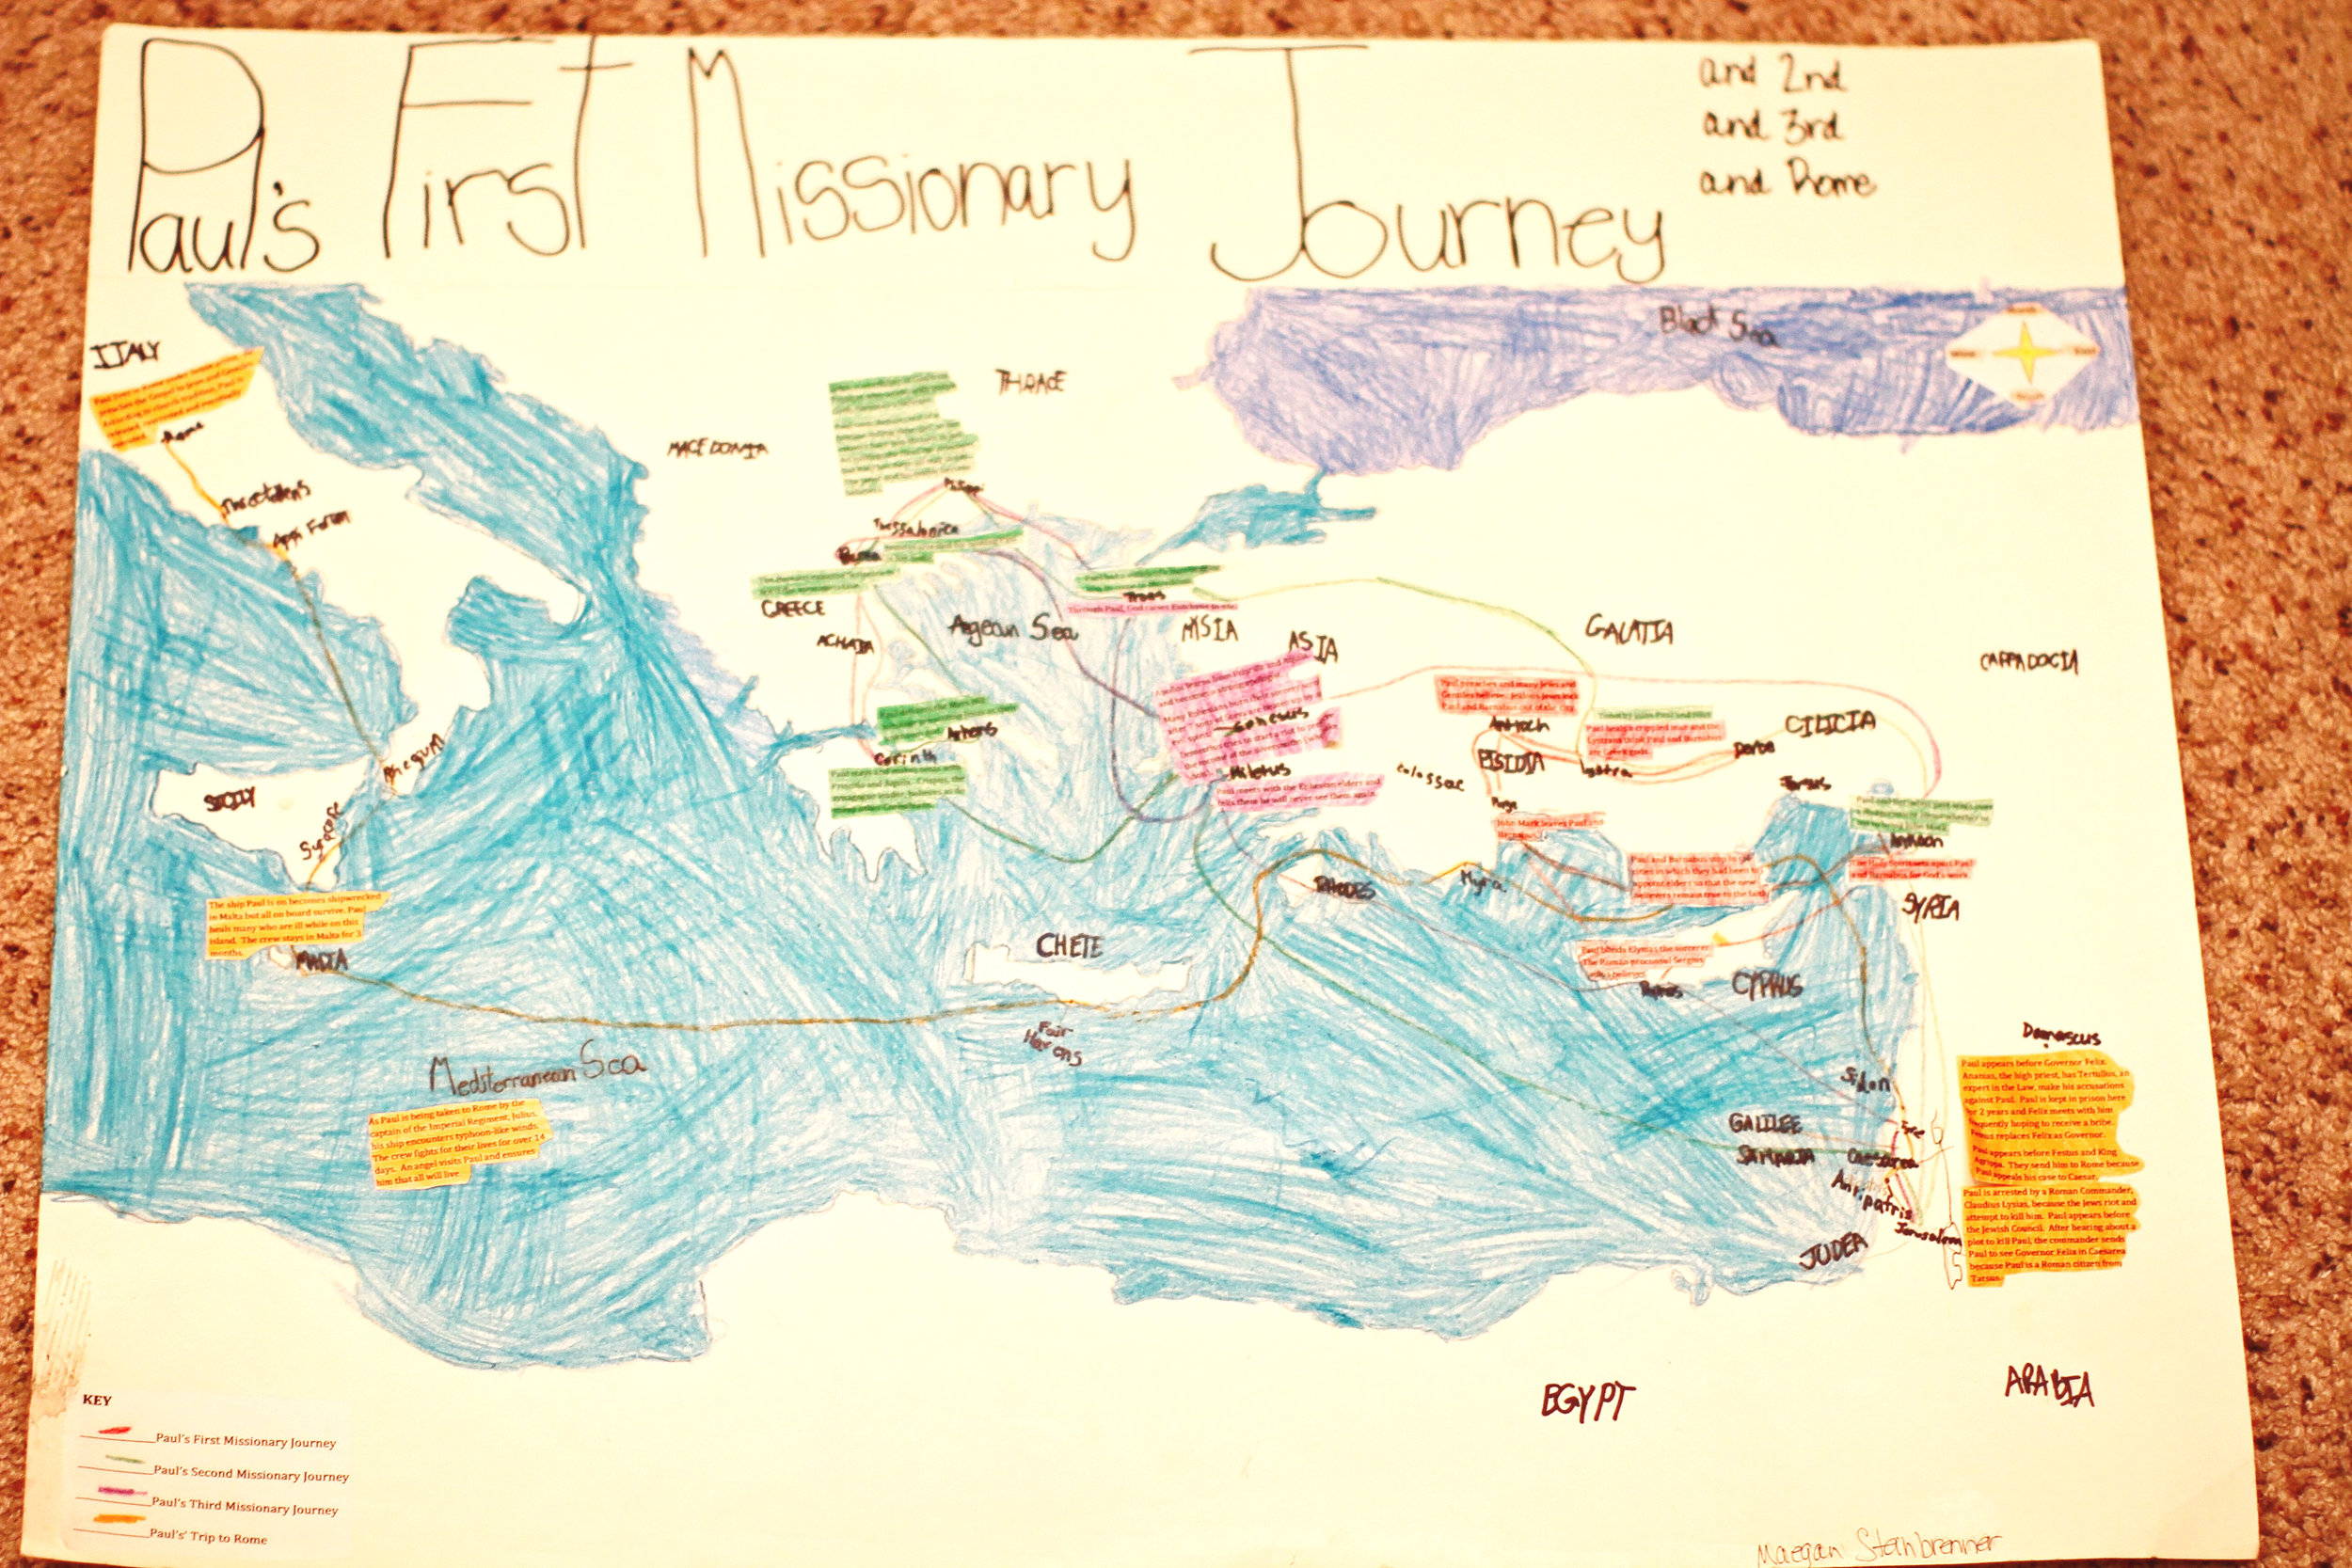 Missionary Map Project | Paul's First Missionary Journey